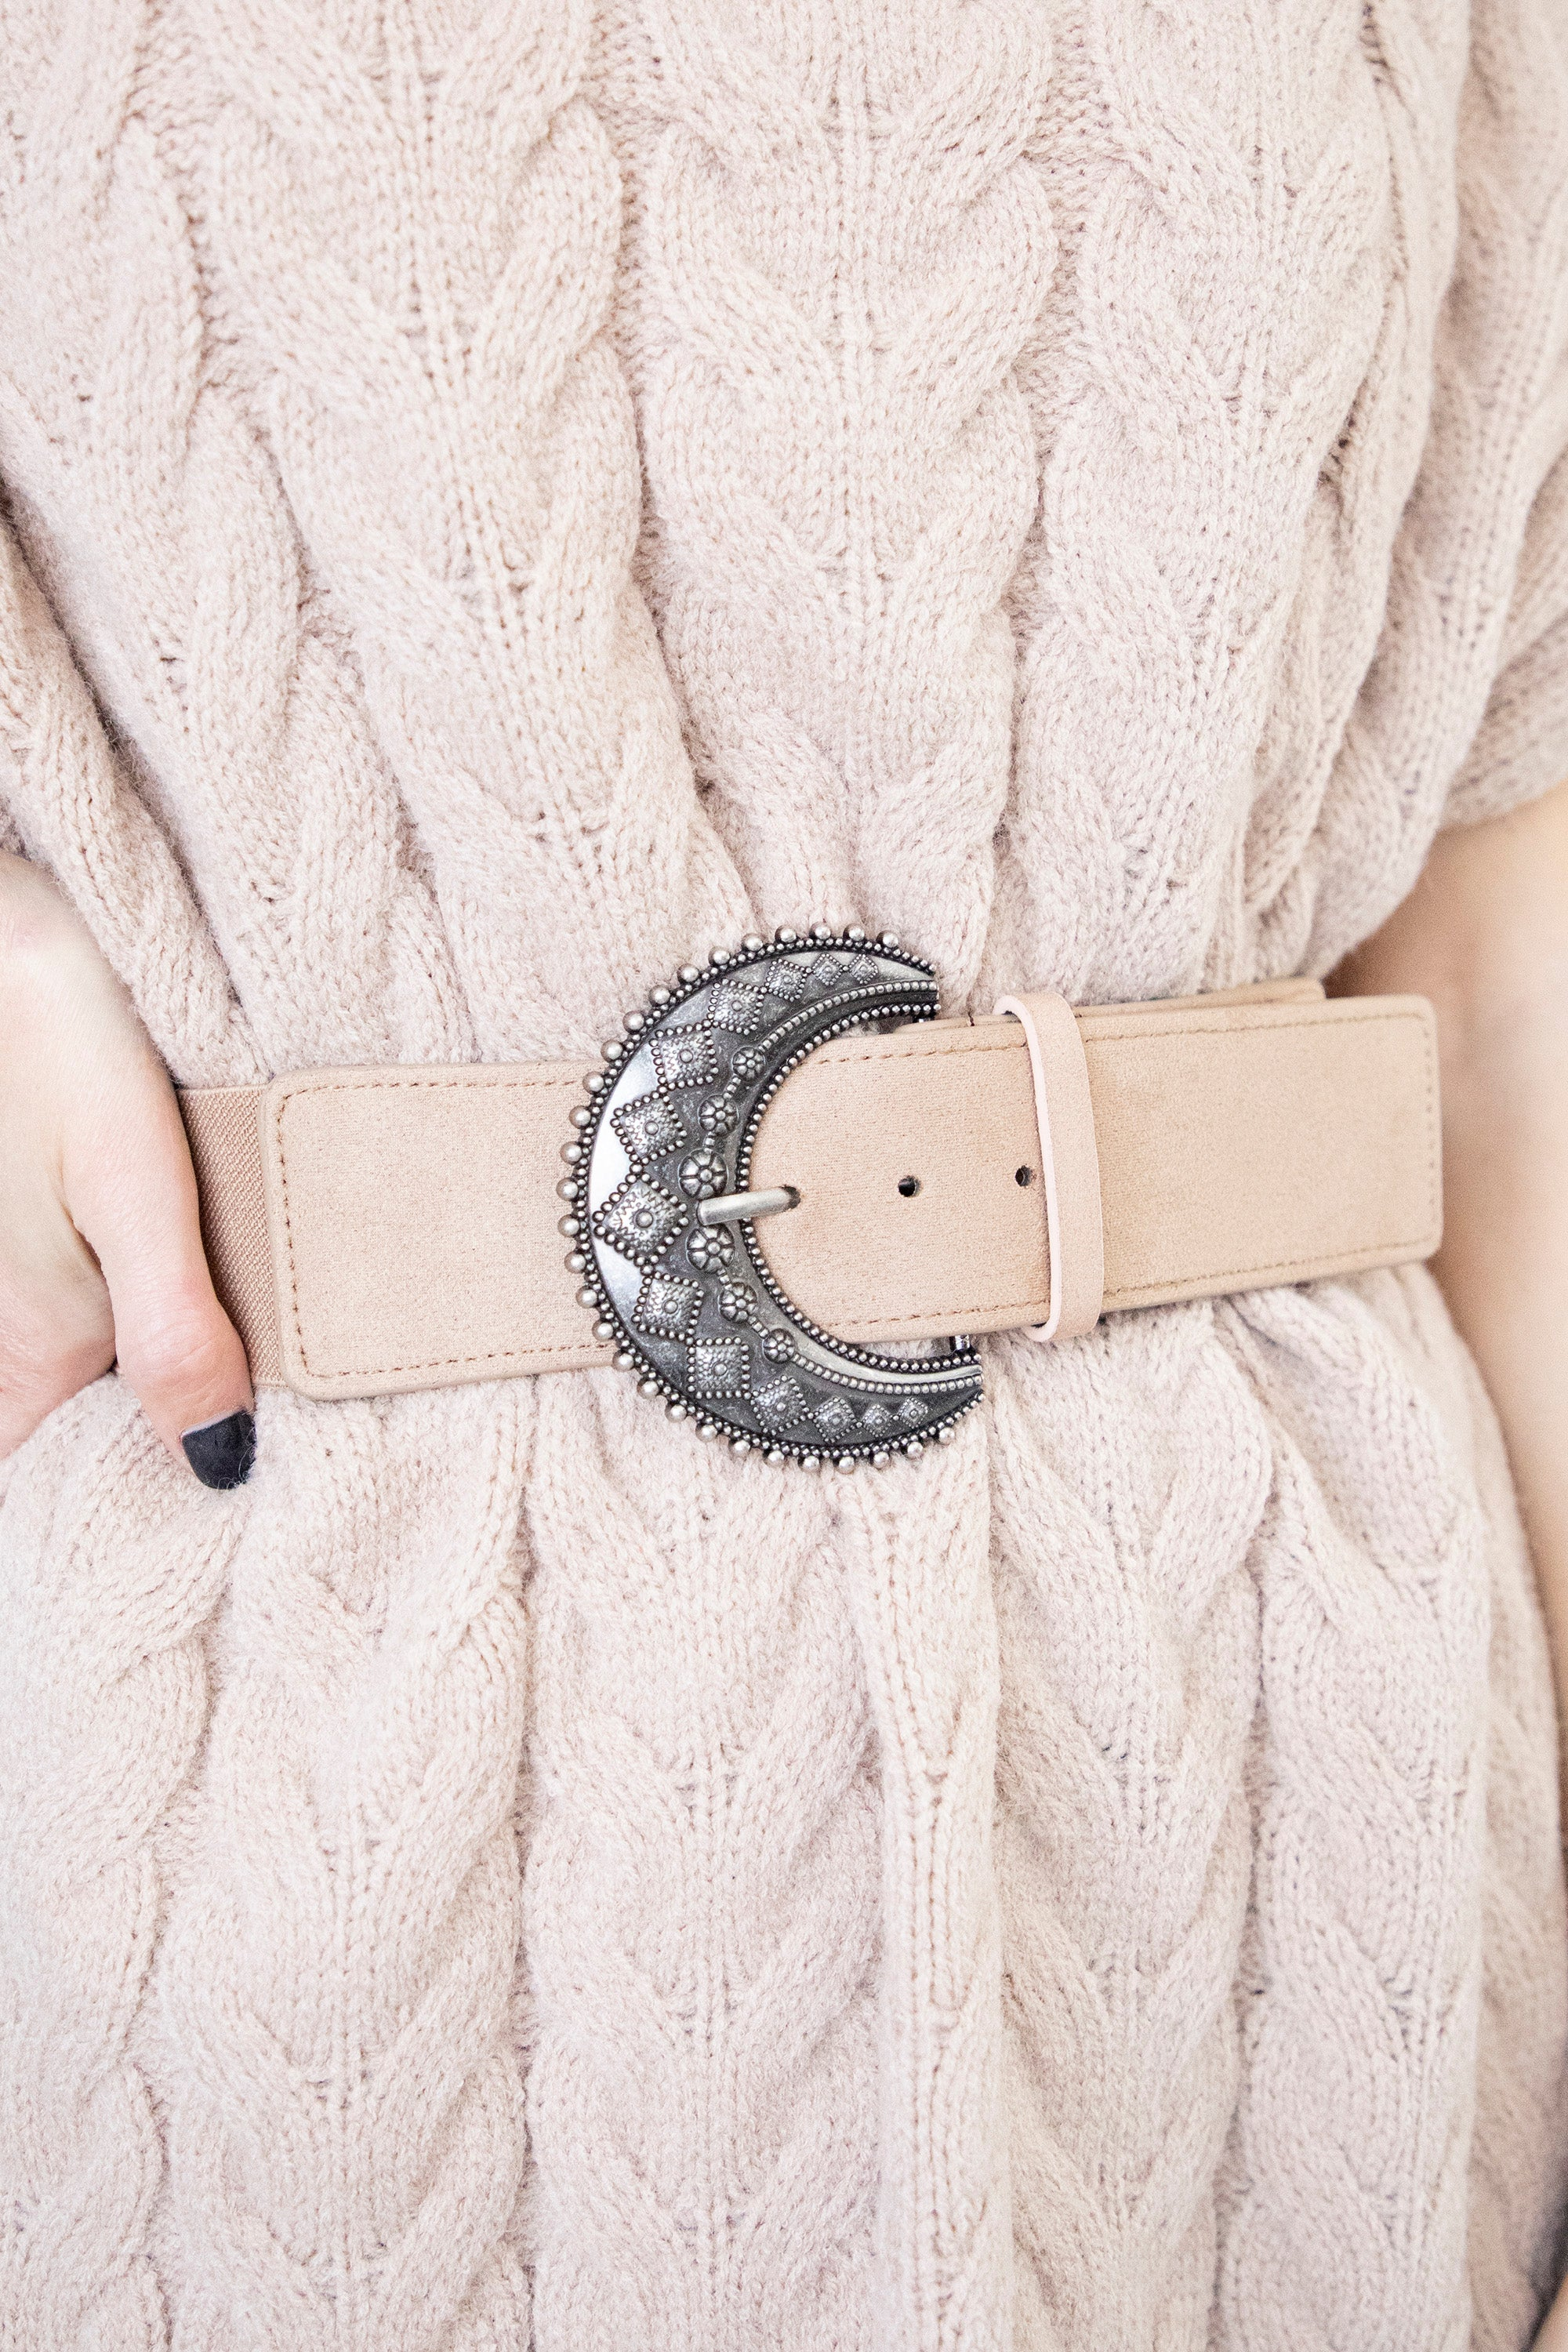 To The Moon And Back Camel/Silver - Taille Riem